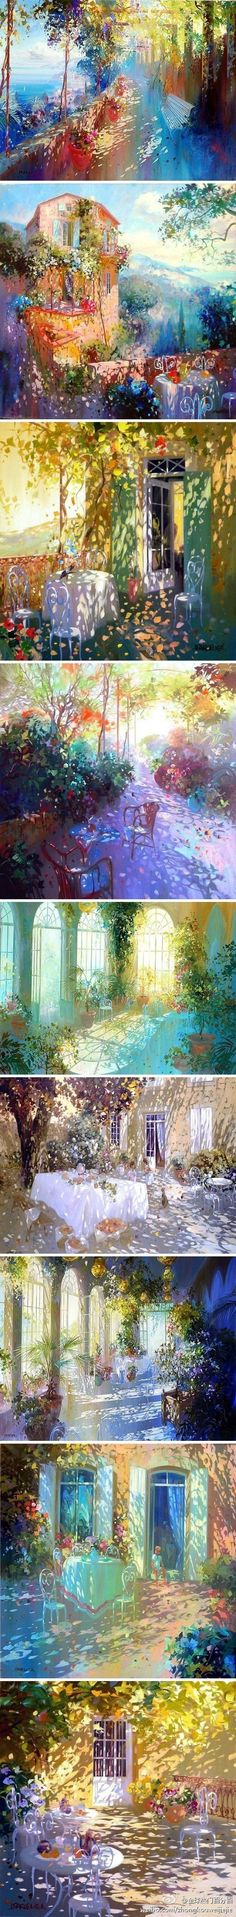 ART BY FRENCH ARTIST Laurent Parcelier.